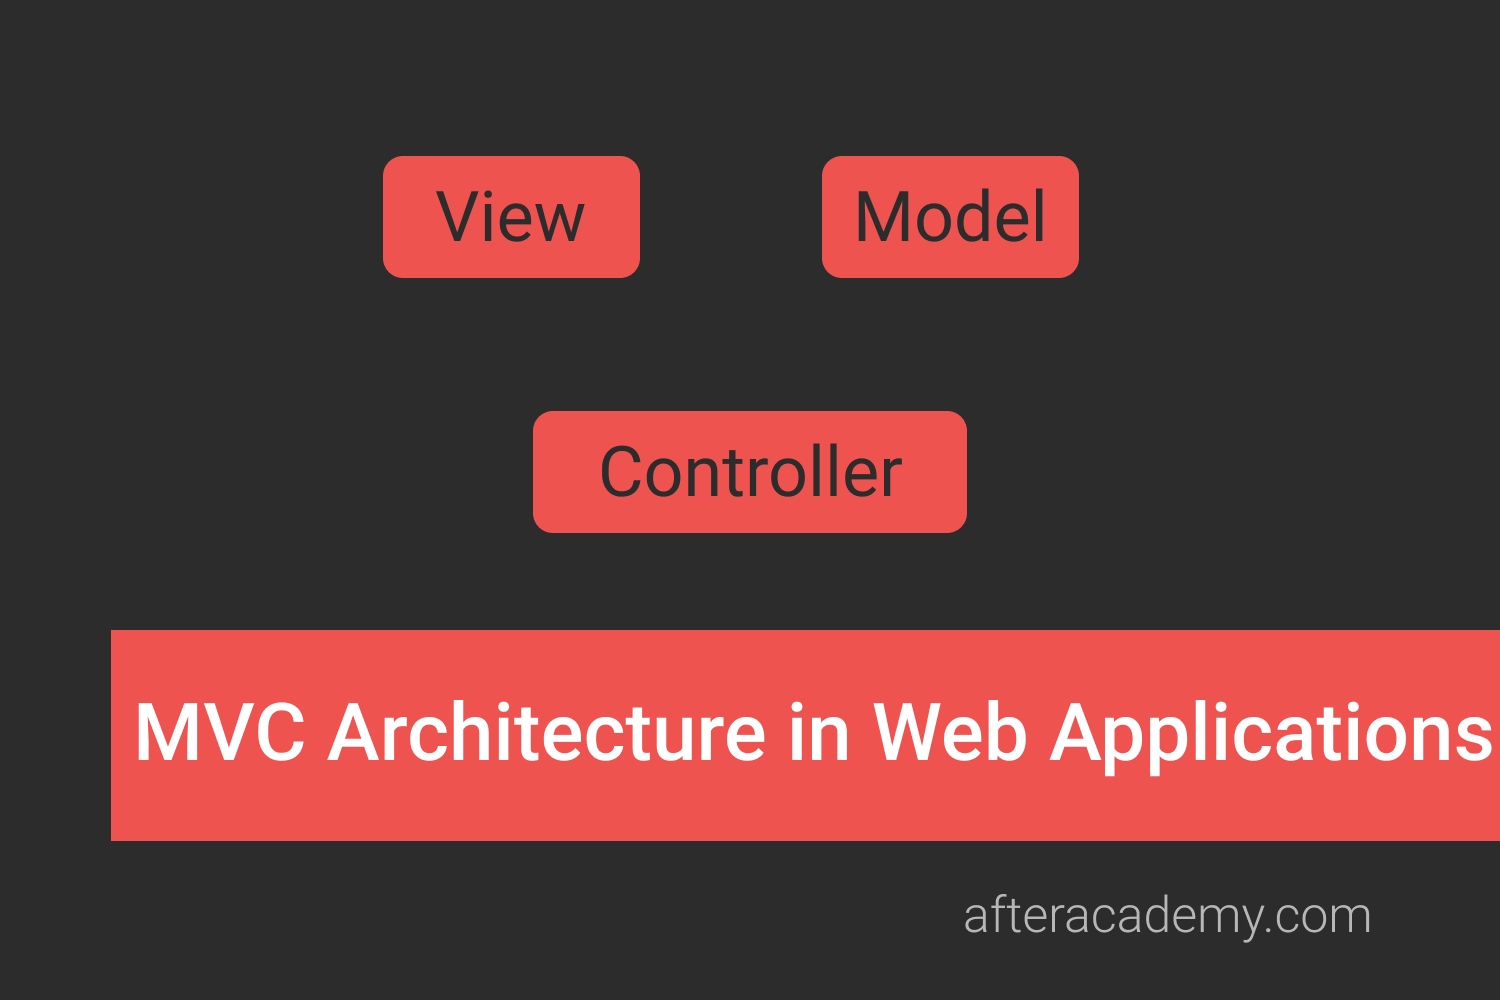 MVC Architecture in Web Applications